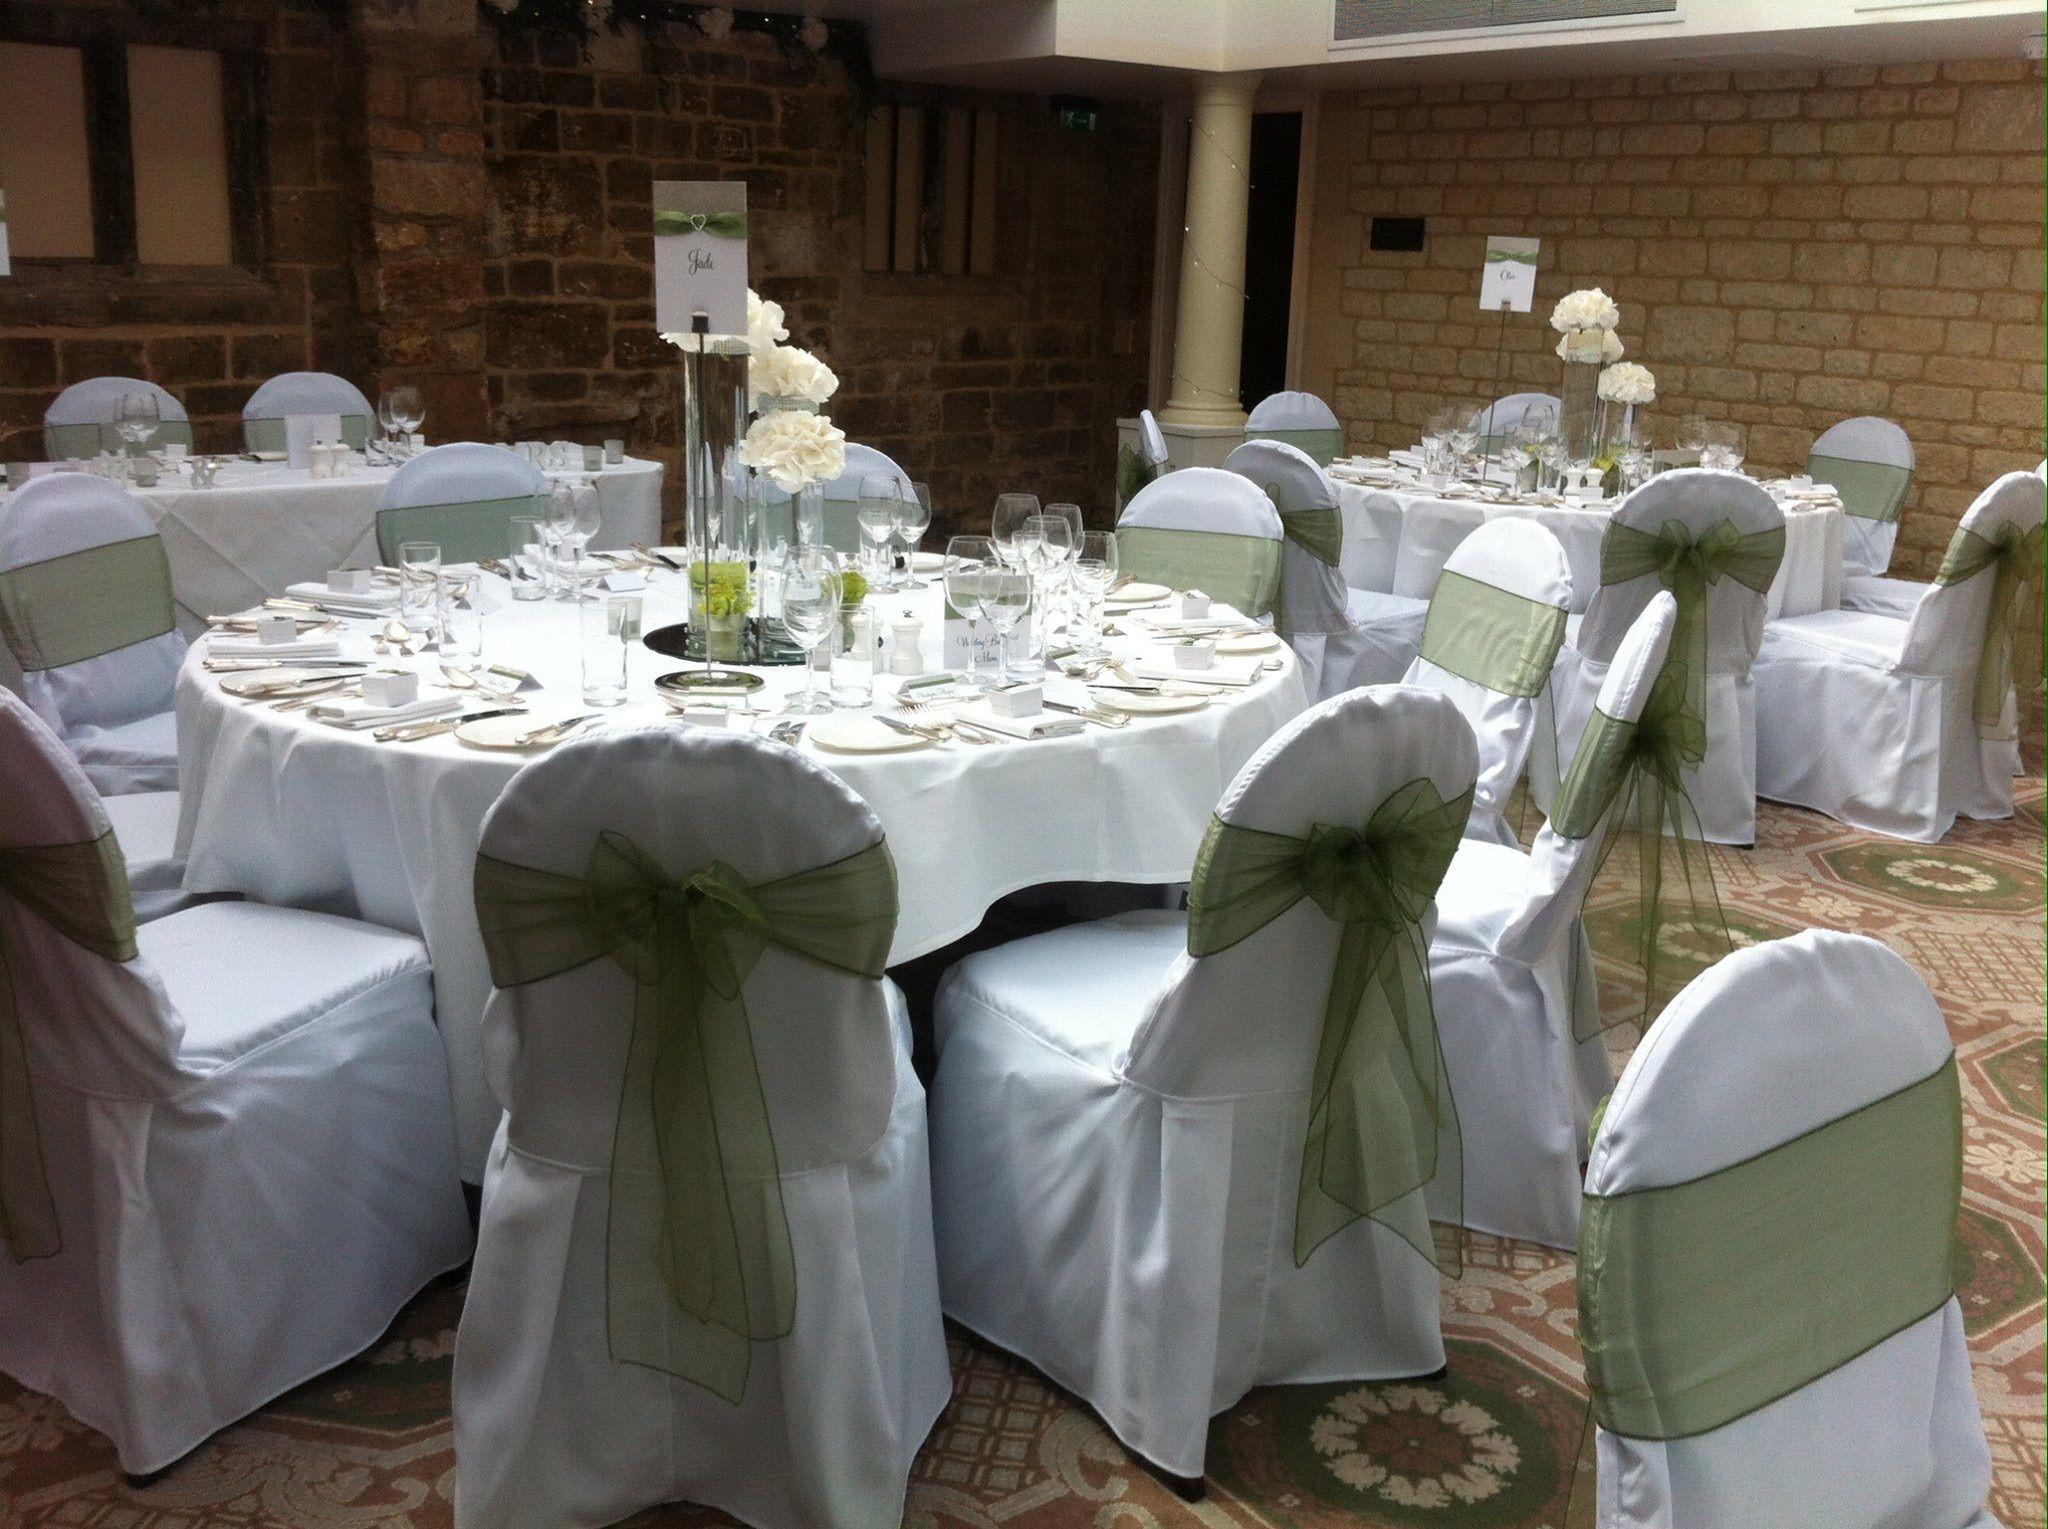 Chair Covers Sage Green Office Gif With Sashes Wedding Reception Theme In